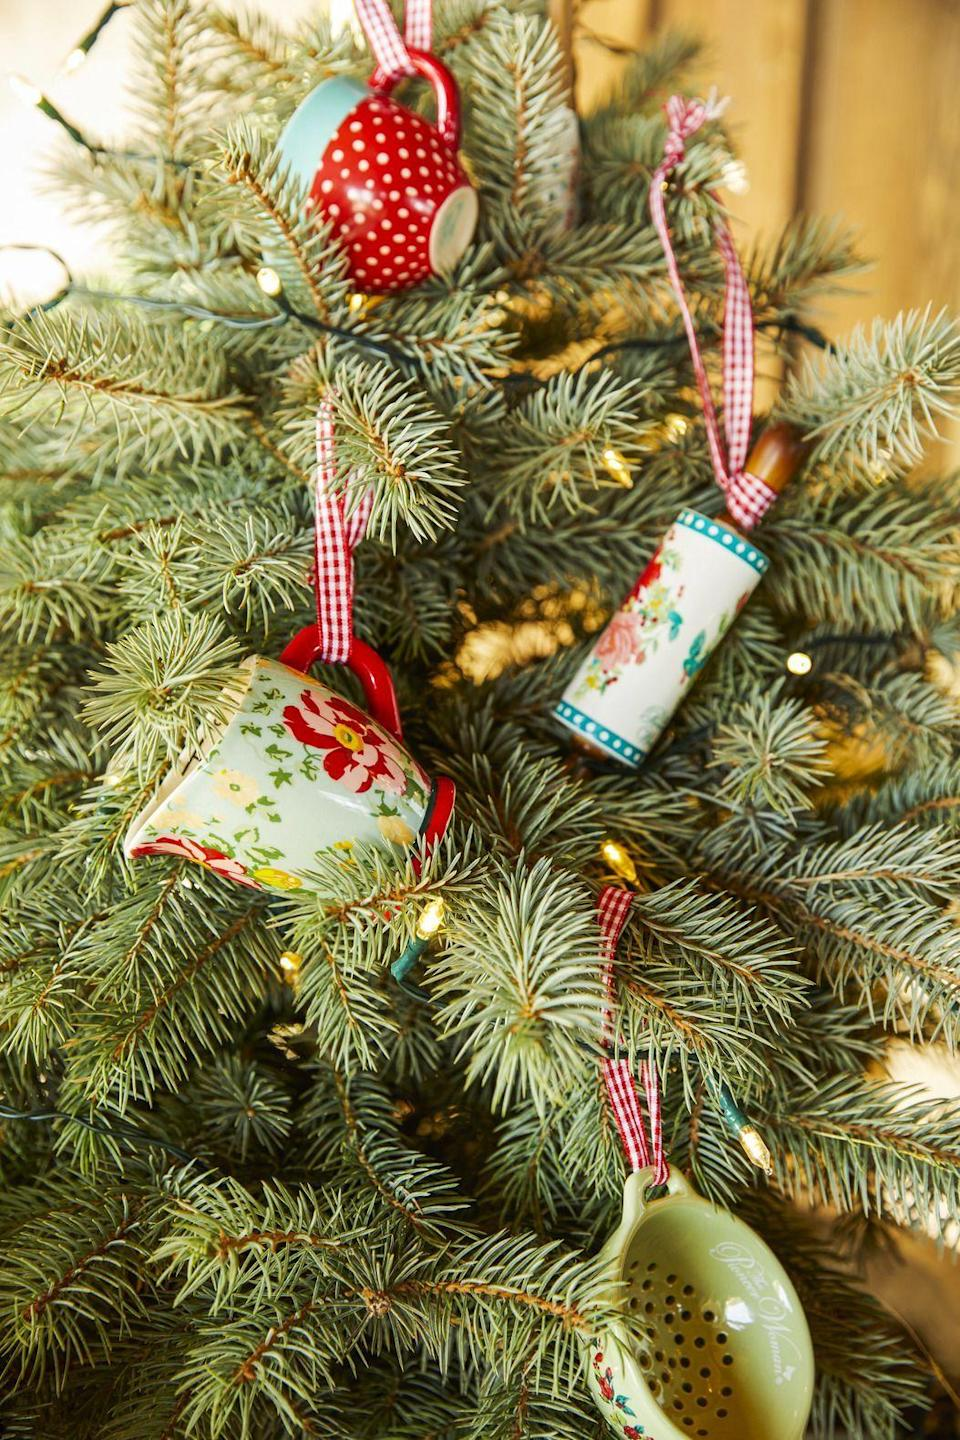 """<p>Yes, they smell amazing, but real Christmas trees aren't for everyone. Even Ree Drummond—a longstanding member of #TeamRealTree—knows that many people don't share her love of wrestling with a 12-foot Noble Fir year after year. """"I understand the allure of artificial, and that some folks have allergies that prevent them from putting real ones in the house,"""" she says. </p><p>Here, we've compiled a list of the best artificial Christmas trees to help you spruce up your home with very little maintenance. Many of the lifelike models we've curated mimic the characteristics of different <a href=""""https://www.thepioneerwoman.com/holidays-celebrations/g32021451/types-of-christmas-trees/"""" rel=""""nofollow noopener"""" target=""""_blank"""" data-ylk=""""slk:types of Christmas trees"""" class=""""link rapid-noclick-resp"""">types of Christmas trees</a>, including shape and needle type. But don't worry, adventurous decorators: We've also got a few pink trees and tinsel trees to choose from. No, they won't fool anyone, but they <em>are</em> wonderful <a href=""""https://www.thepioneerwoman.com/home-lifestyle/crafts-diy/g33549660/christmas-decoration-ideas/"""" rel=""""nofollow noopener"""" target=""""_blank"""" data-ylk=""""slk:Christmas decorations"""" class=""""link rapid-noclick-resp"""">Christmas decorations</a>. </p><p>What's more, you'll also find a range of price points on our list, including artificial trees under $50 and high quality fir and spruce-lookalikes. Find your dream tree, then deck it out with our all-time favorite <a href=""""https://www.thepioneerwoman.com/holidays-celebrations/g33925344/christmas-tree-decorations/"""" rel=""""nofollow noopener"""" target=""""_blank"""" data-ylk=""""slk:Christmas tree decorations"""" class=""""link rapid-noclick-resp"""">Christmas tree decorations</a>—and don't forget a shiny <a href=""""https://www.thepioneerwoman.com/home-lifestyle/decorating-ideas/g34521353/christmas-tree-toppers/"""" rel=""""nofollow noopener"""" target=""""_blank"""" data-ylk=""""slk:Christmas tree topper"""" class=""""link rapid-noclick-resp"""">Christmas tree topp"""